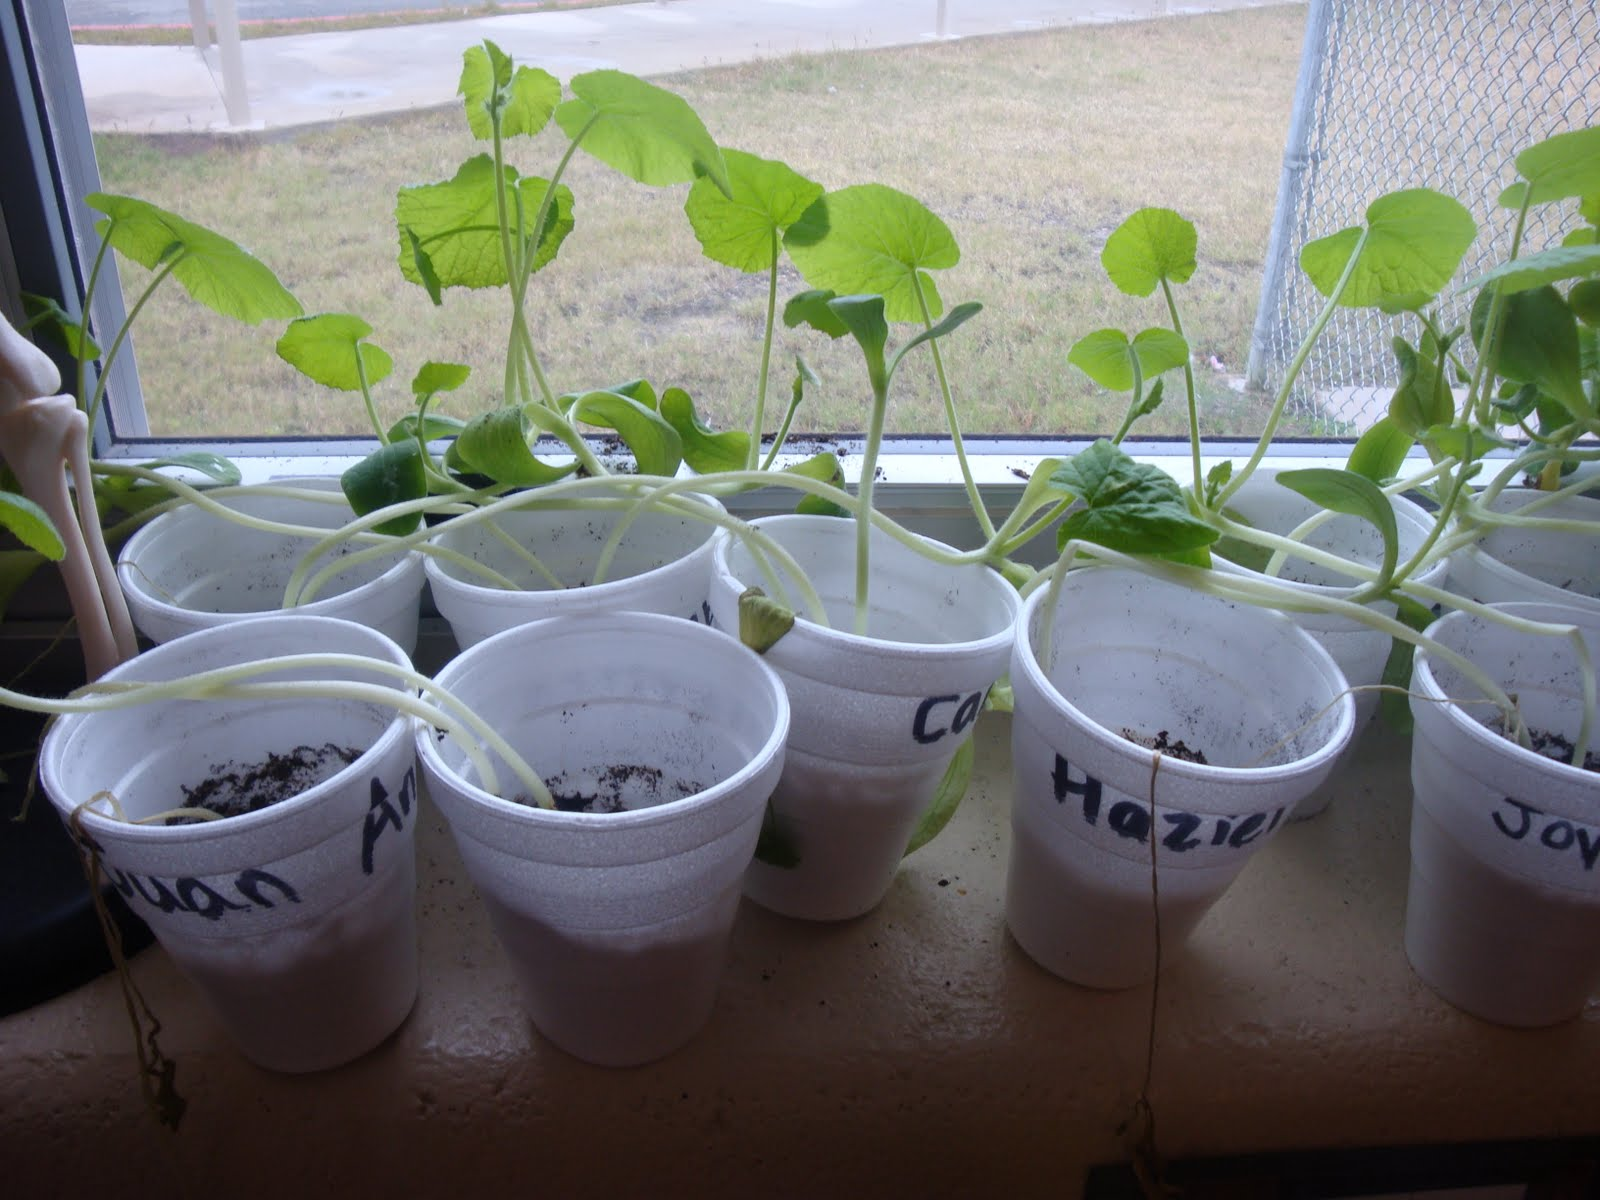 Kids planting seeds in cups